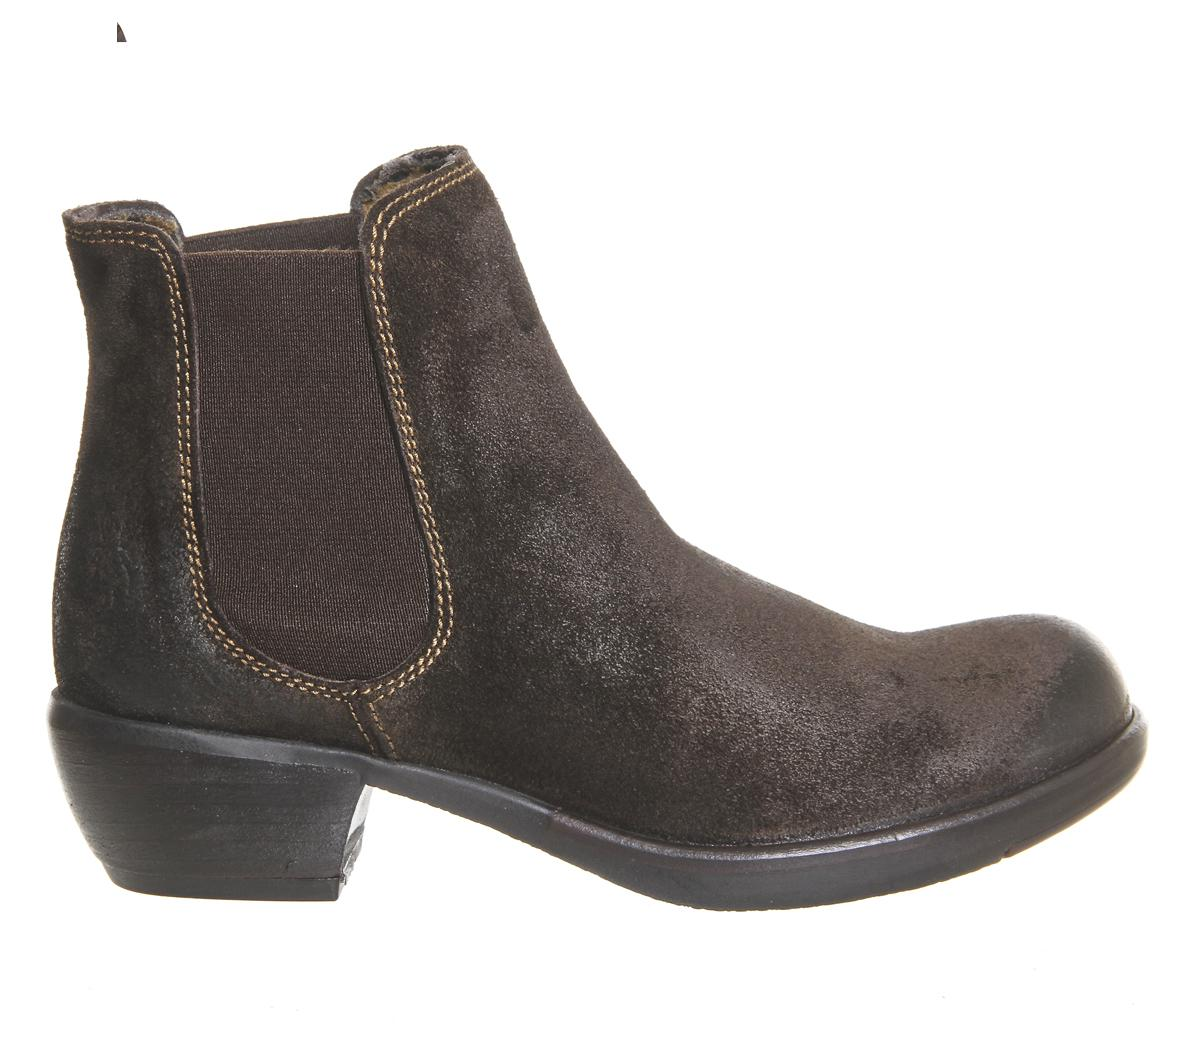 Fly London Suede Make Chelsea Boots